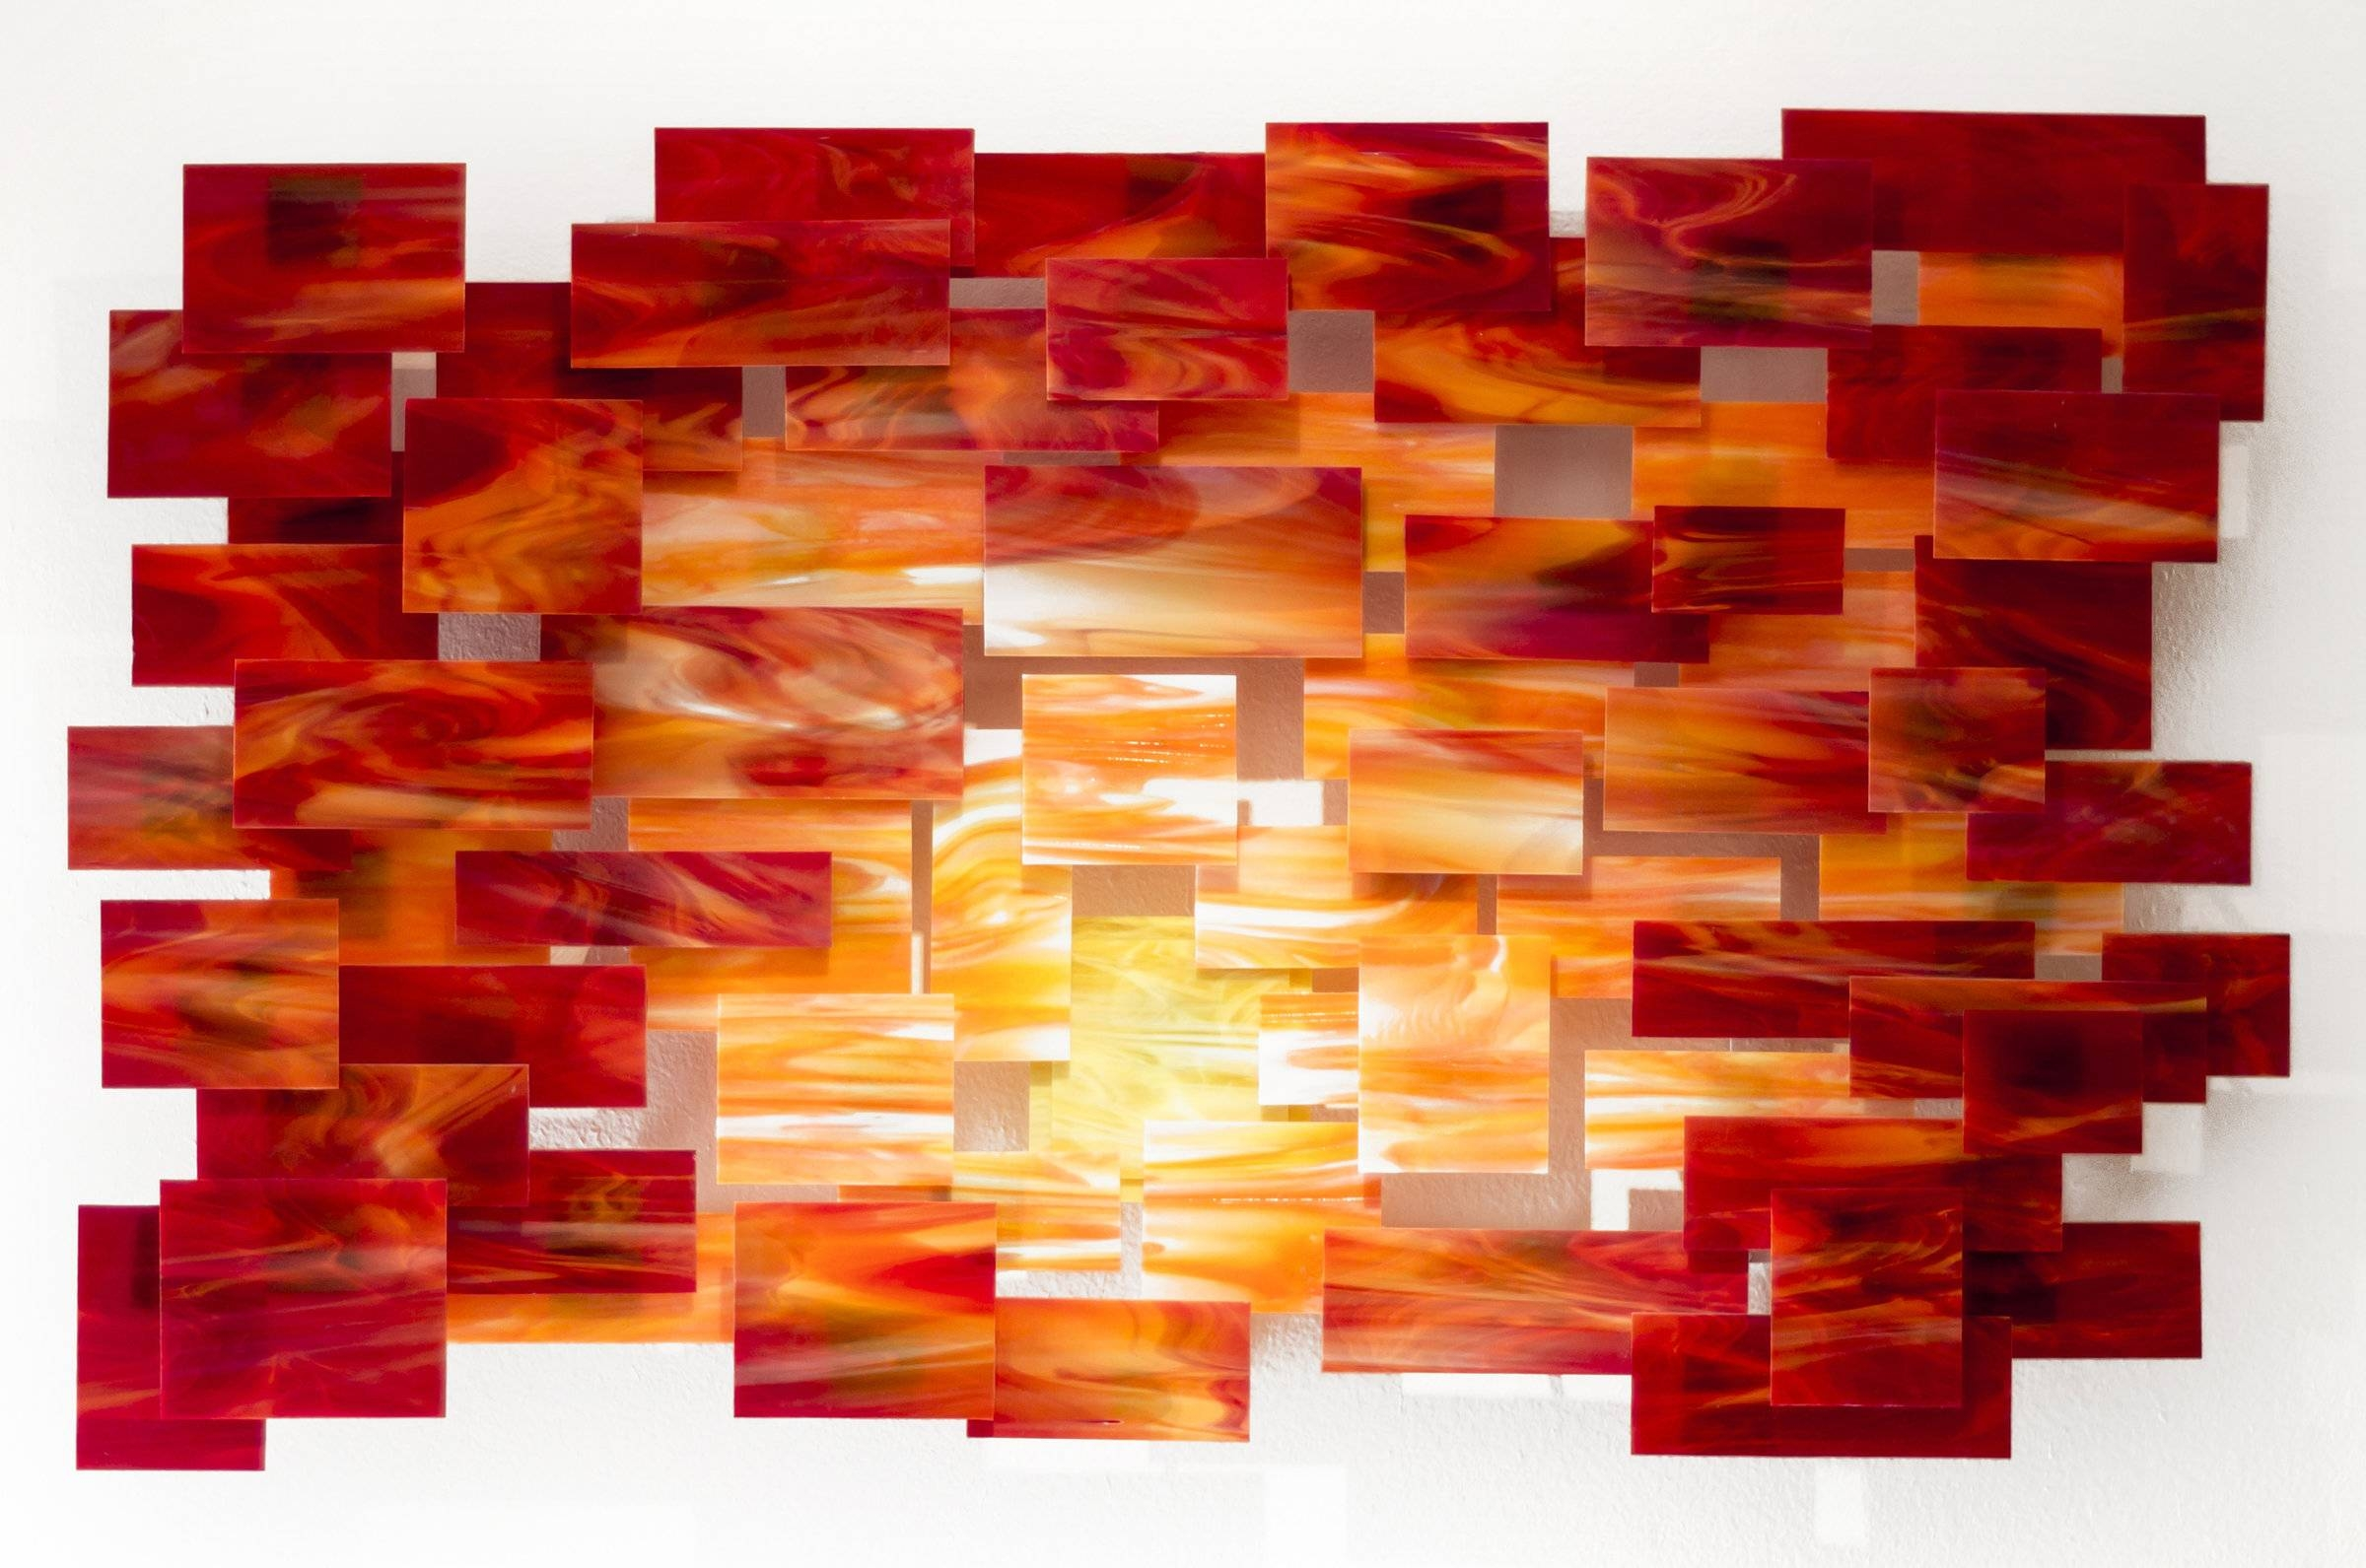 Glass Wall Artnorth American Artists | Artful Home Regarding Recent Woven Metal Wall Art (View 6 of 20)